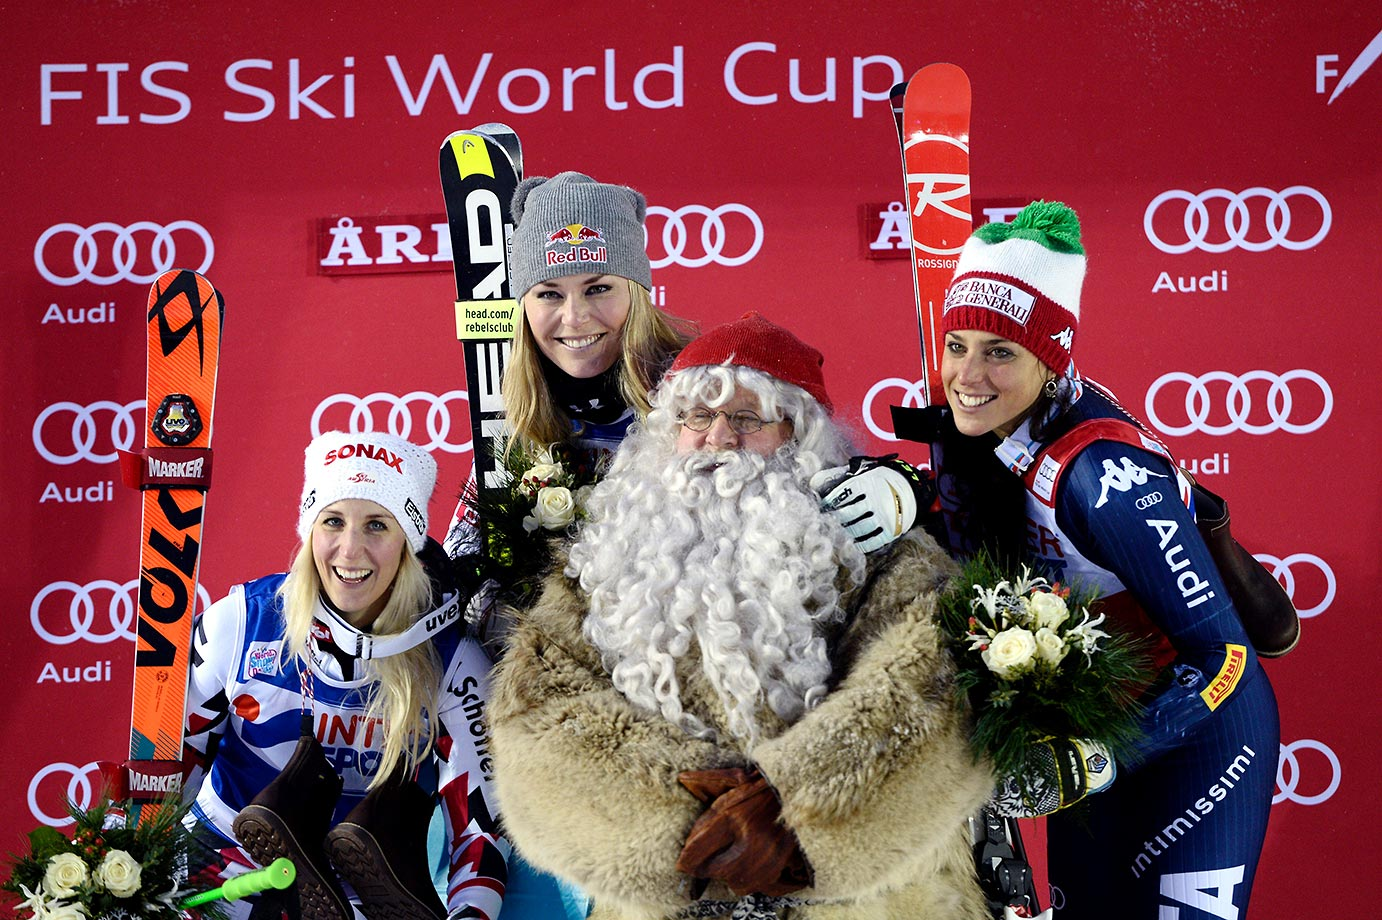 This is one happy Santa at the FIS Ski World Cup with Eva-Maria Brem, Lindsey Vonn and Federica Brignone.